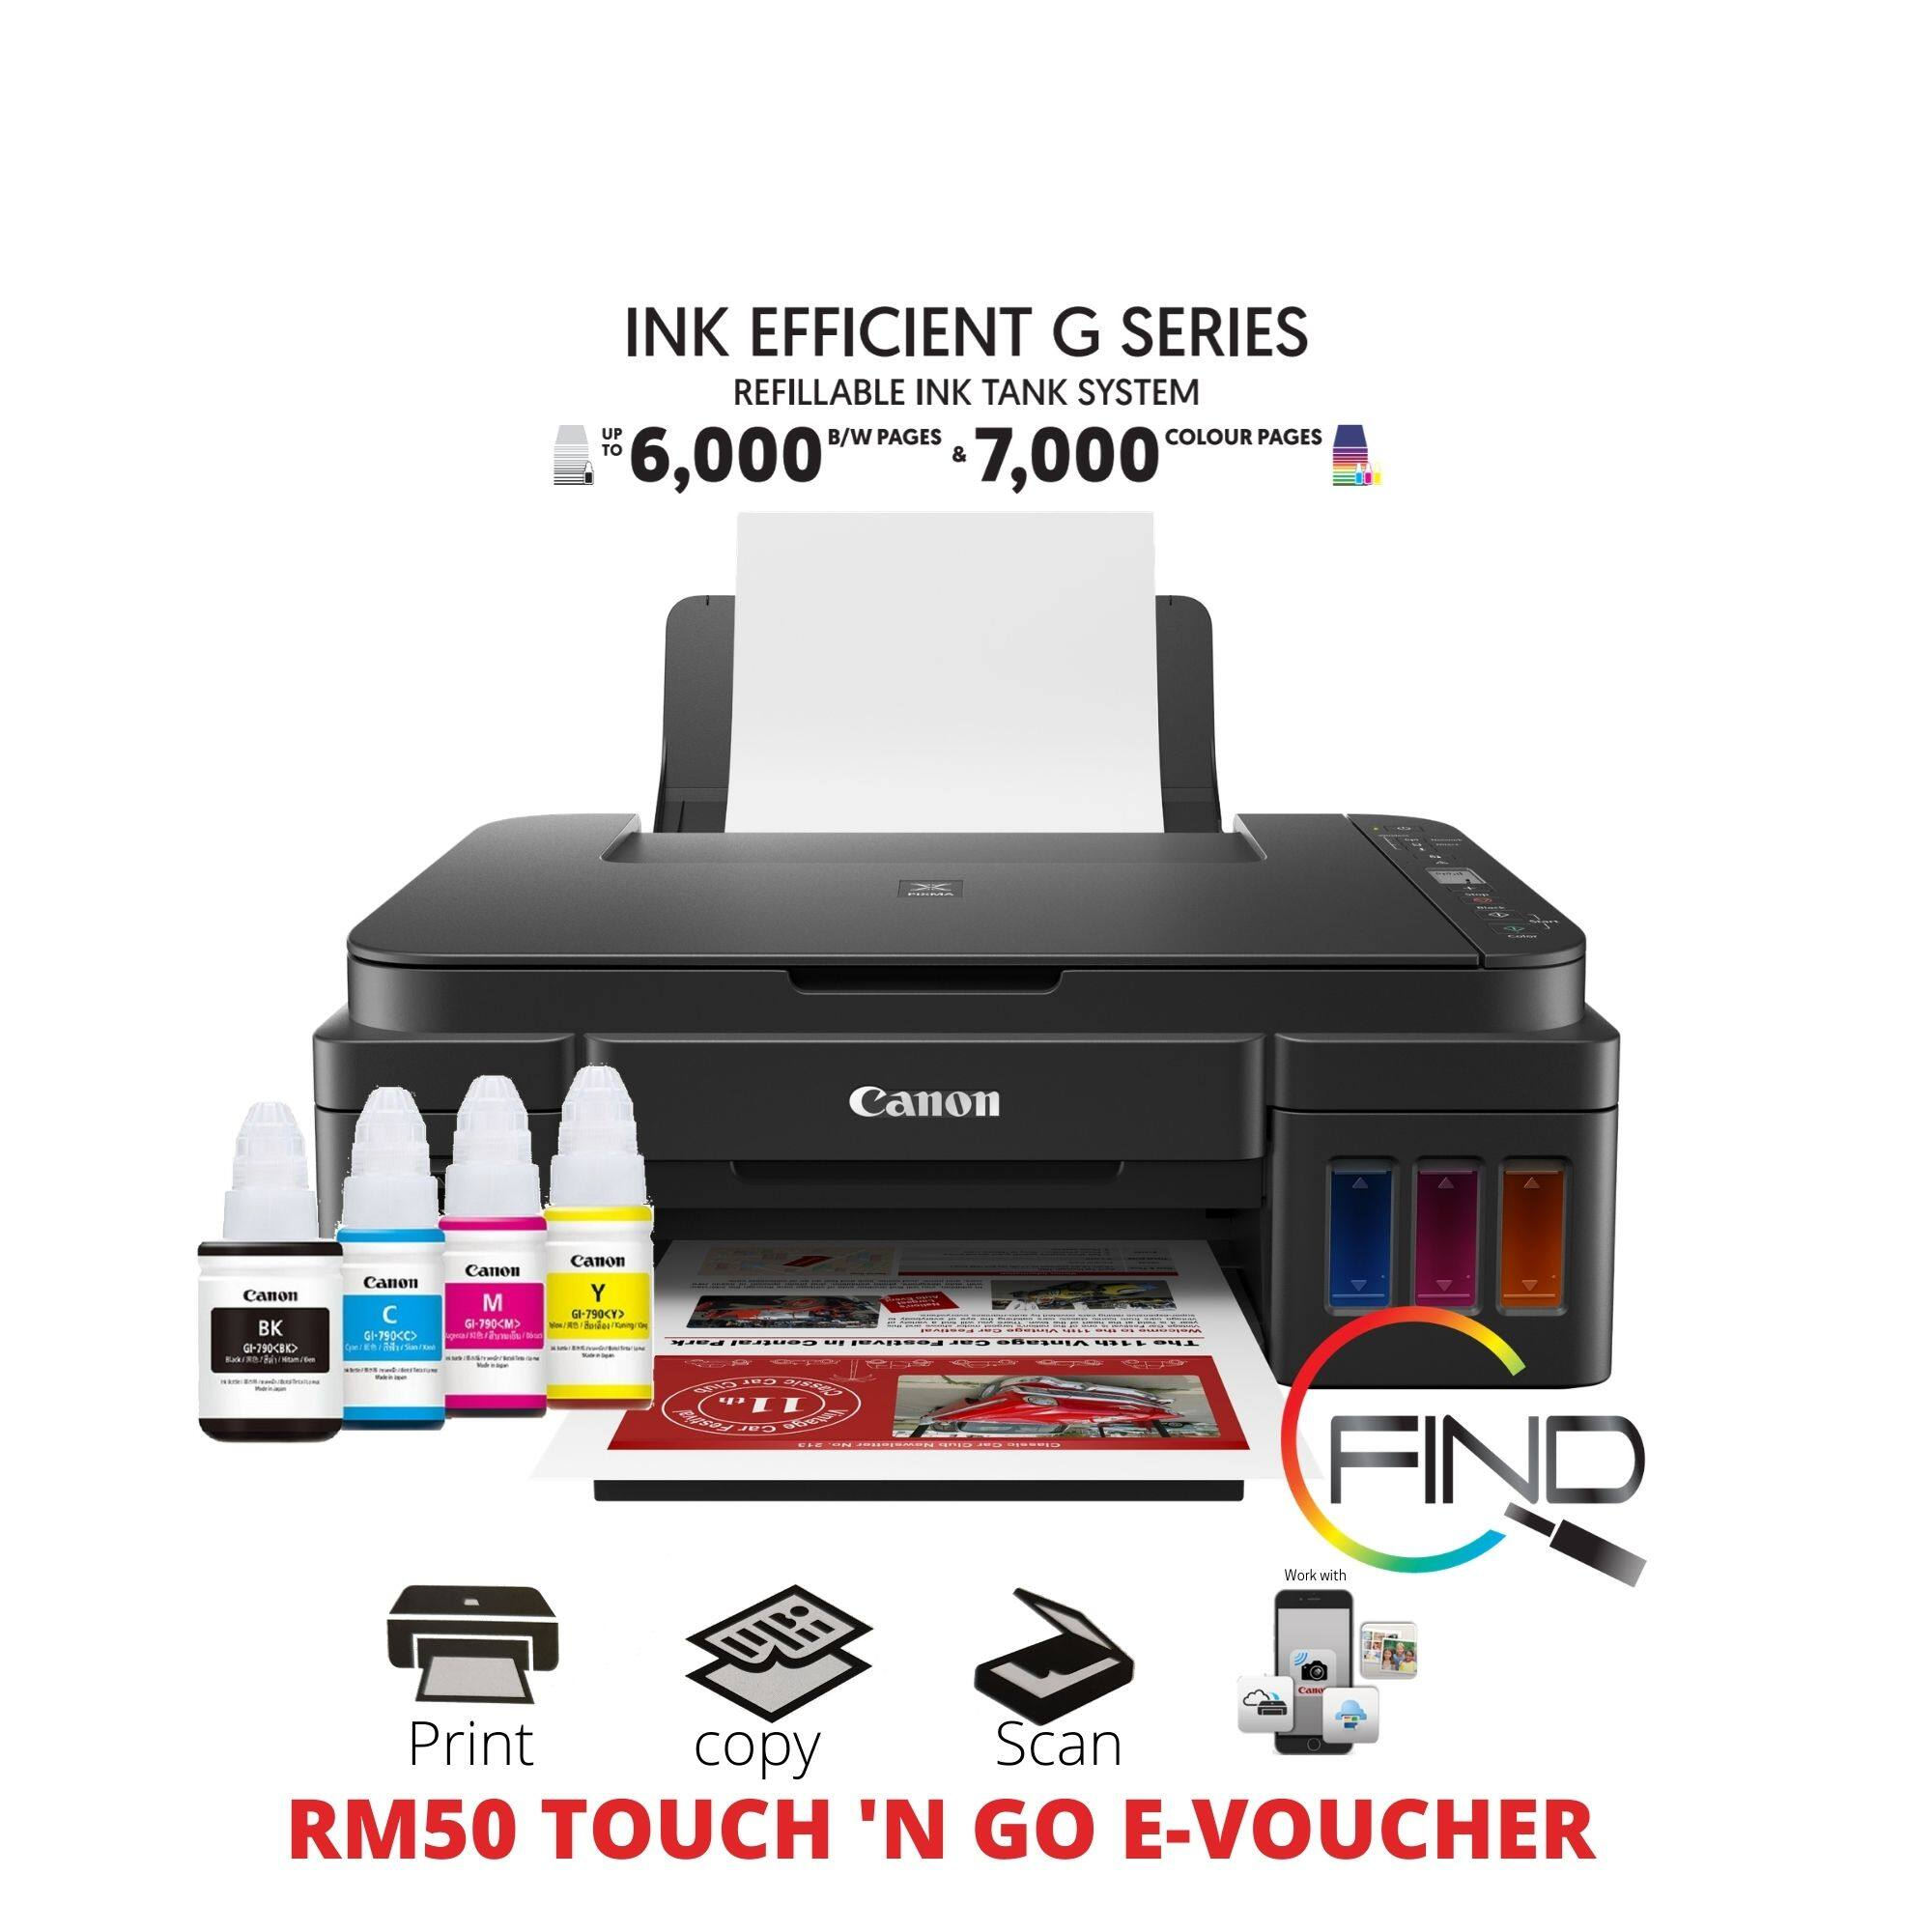 CANON PIXMA G3010 AIO ALL IN ONE (PRINT/SCAN/COPY) REFILLABLE INK TANK SYSTEM WIFI PRINTER (NOT SUPPORT MAC PC)